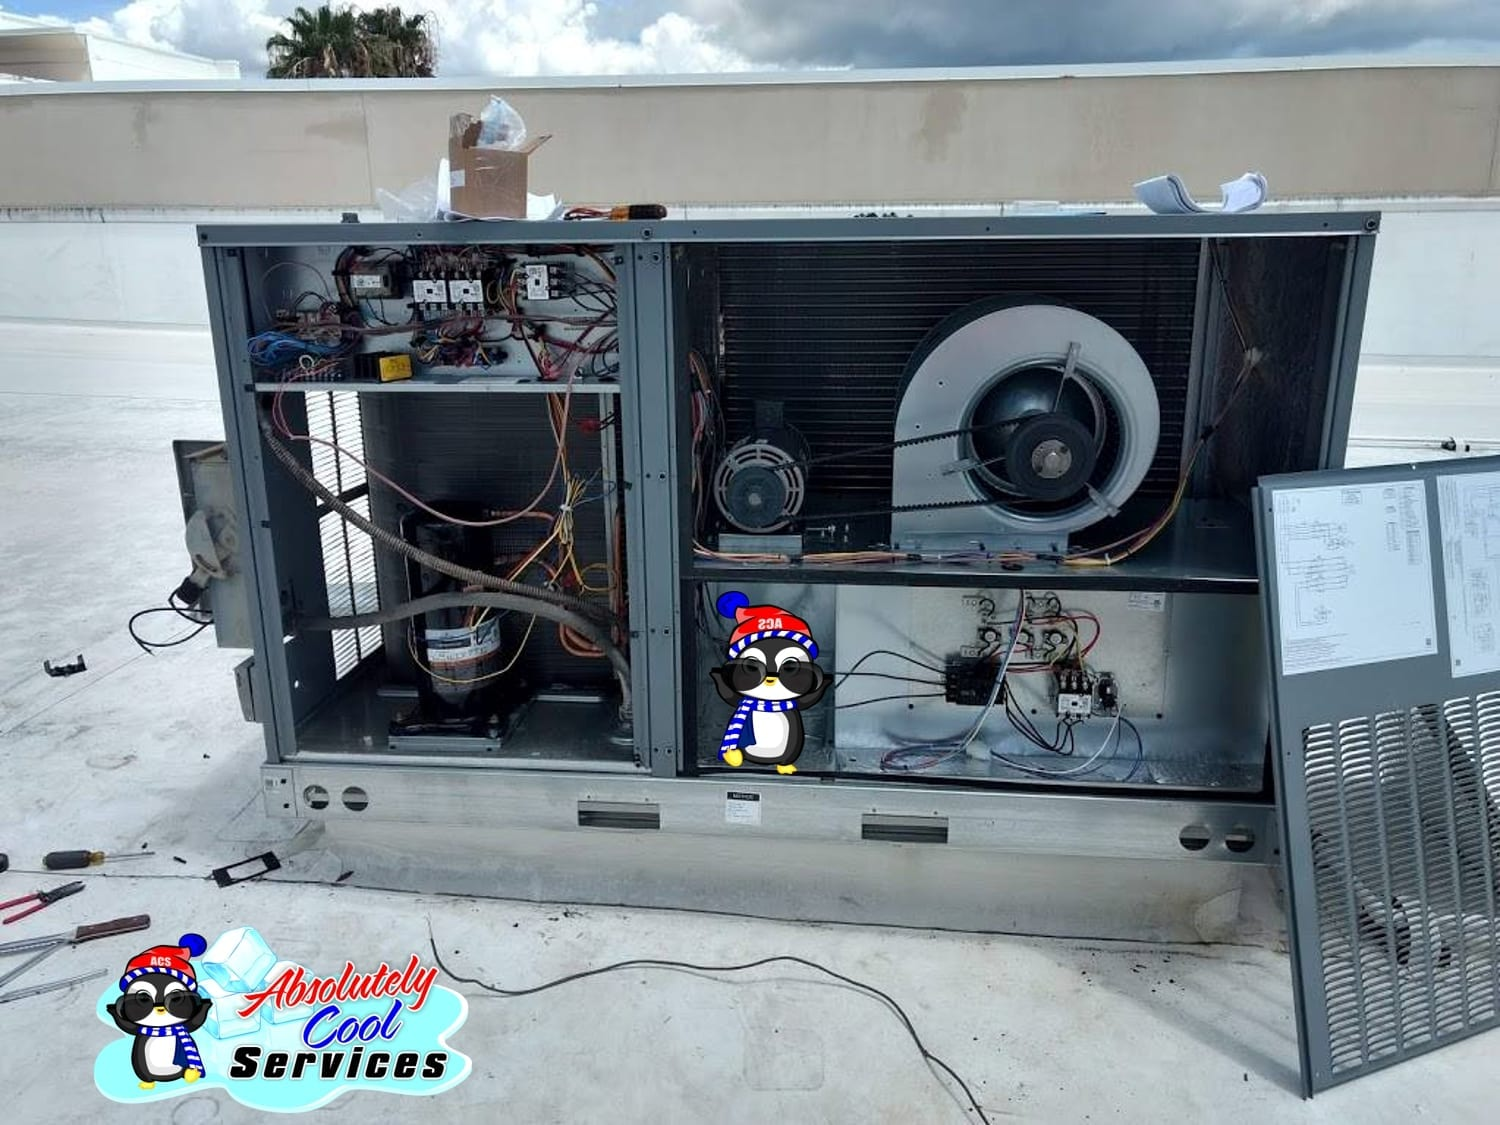 Roof Air Conditioning | Air Conditioning Duct Work Service near Jupitor